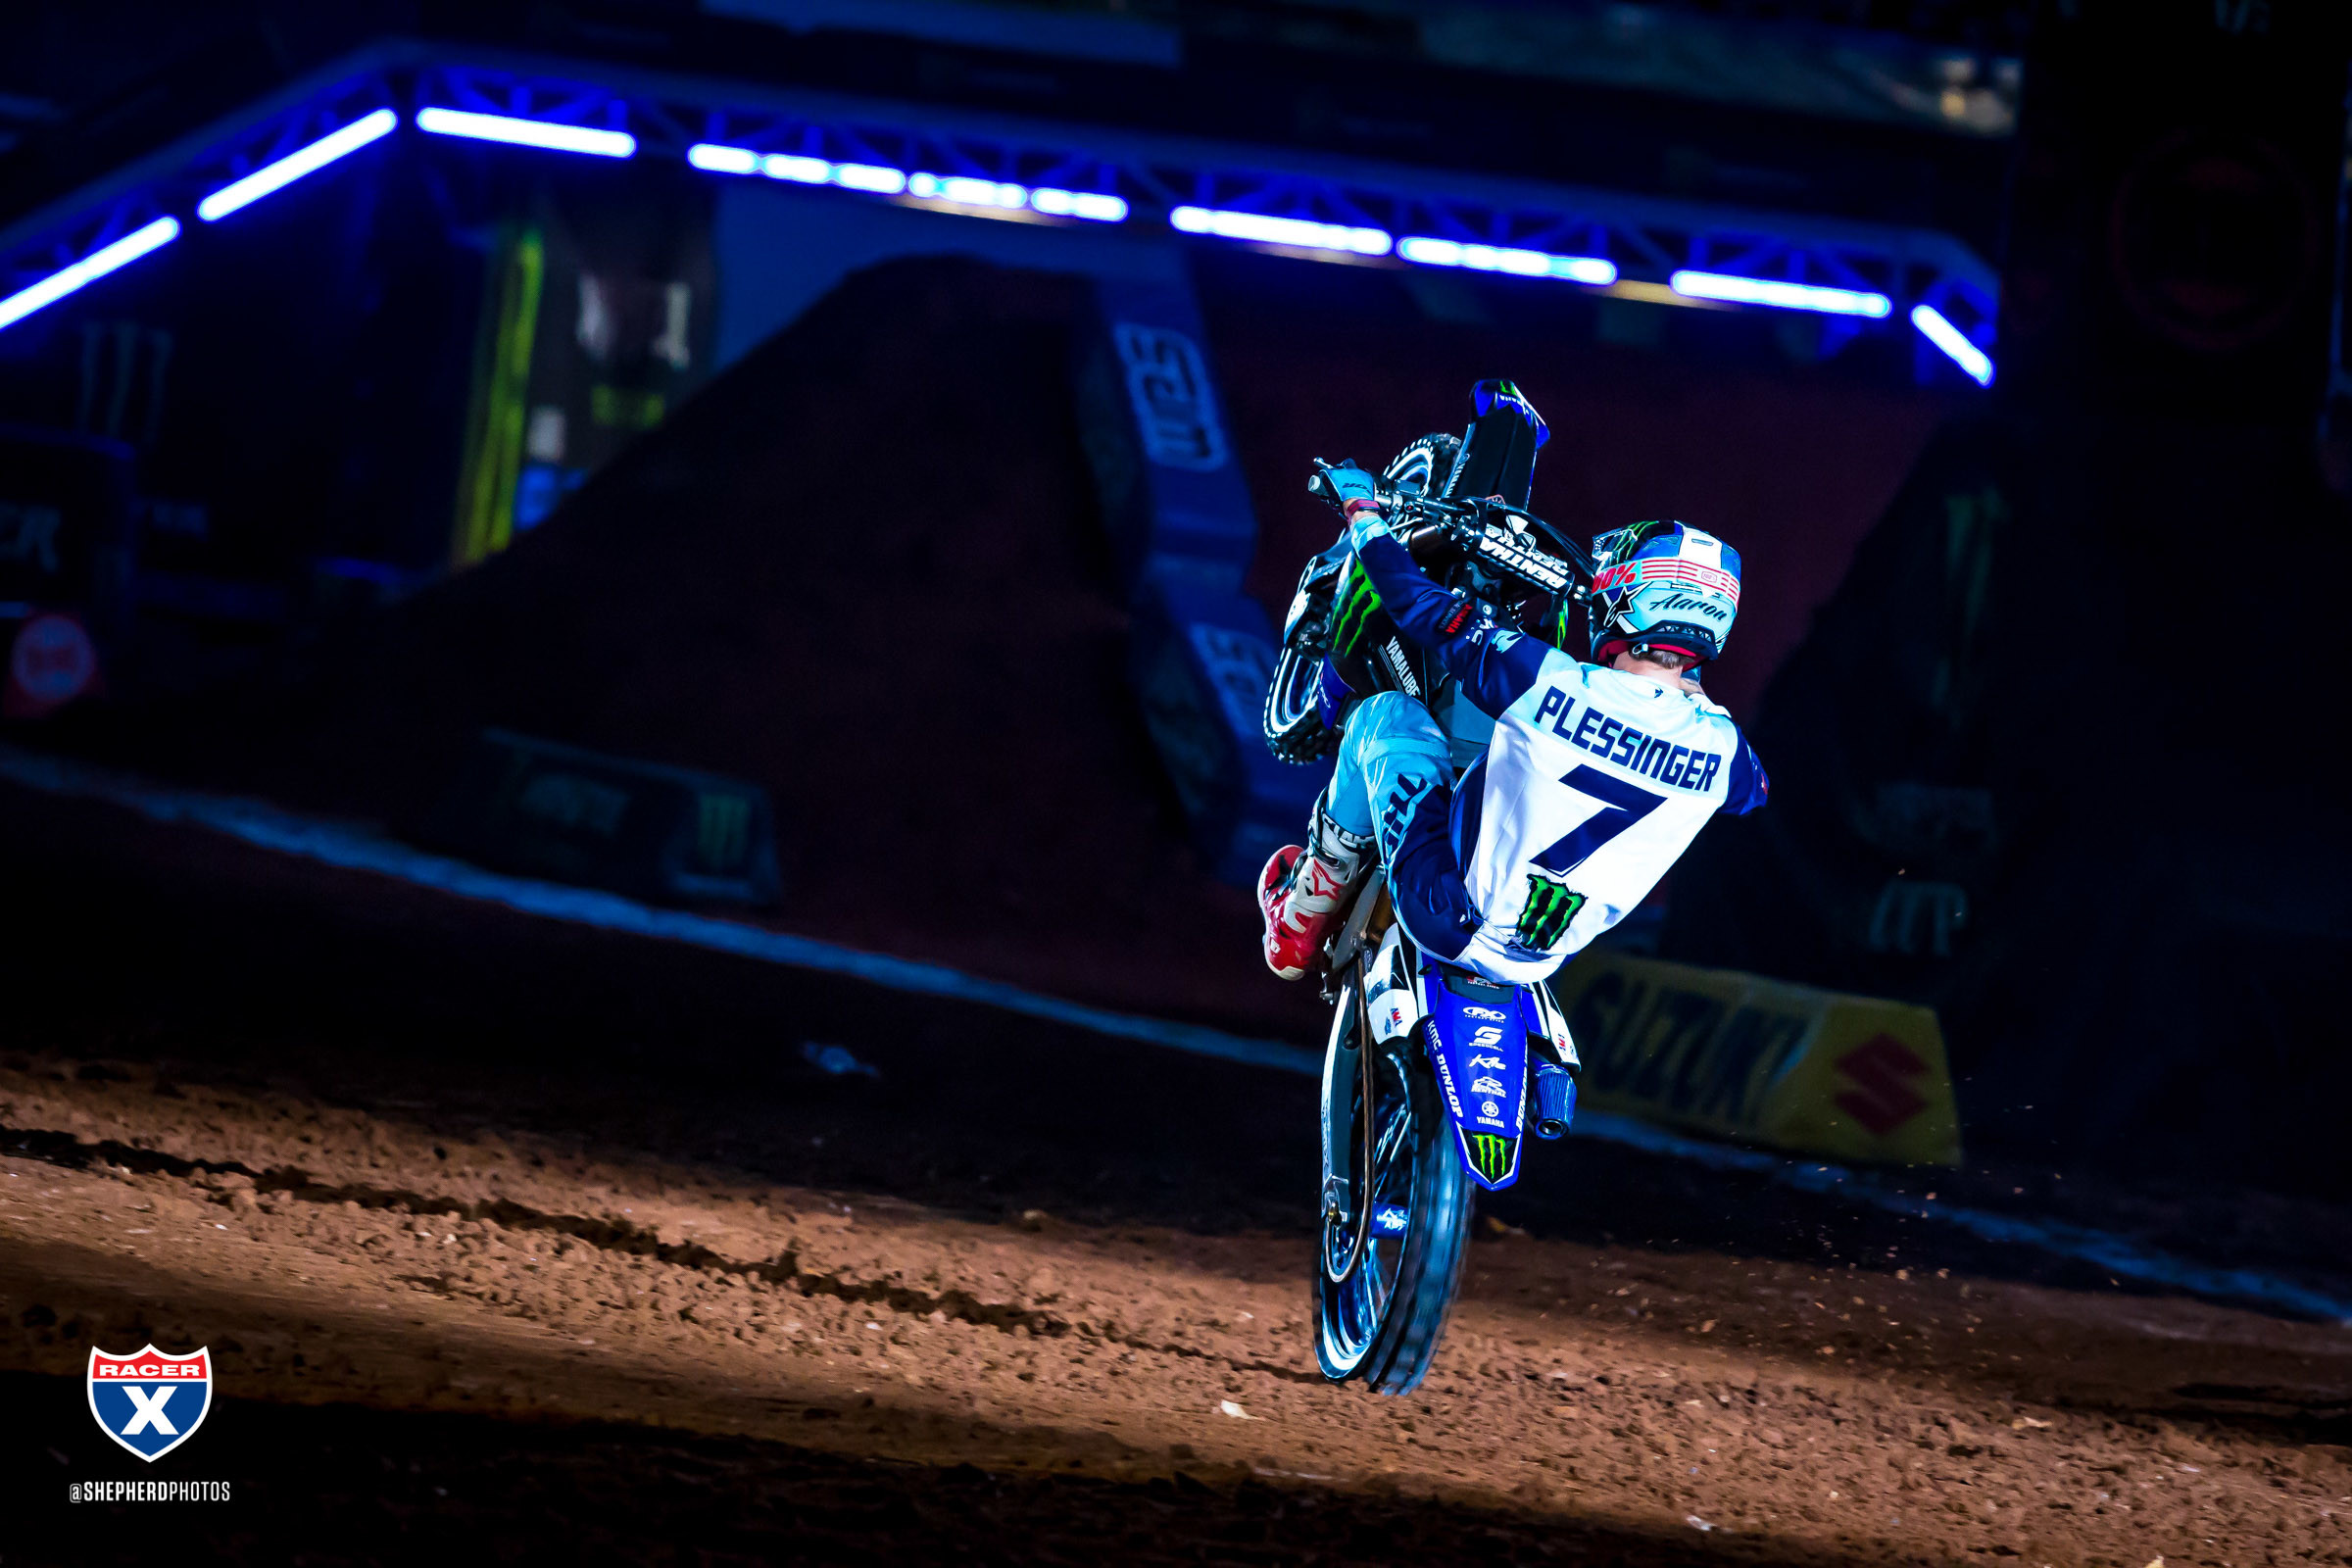 Plessinger_RS_SX19_Atlanta_010